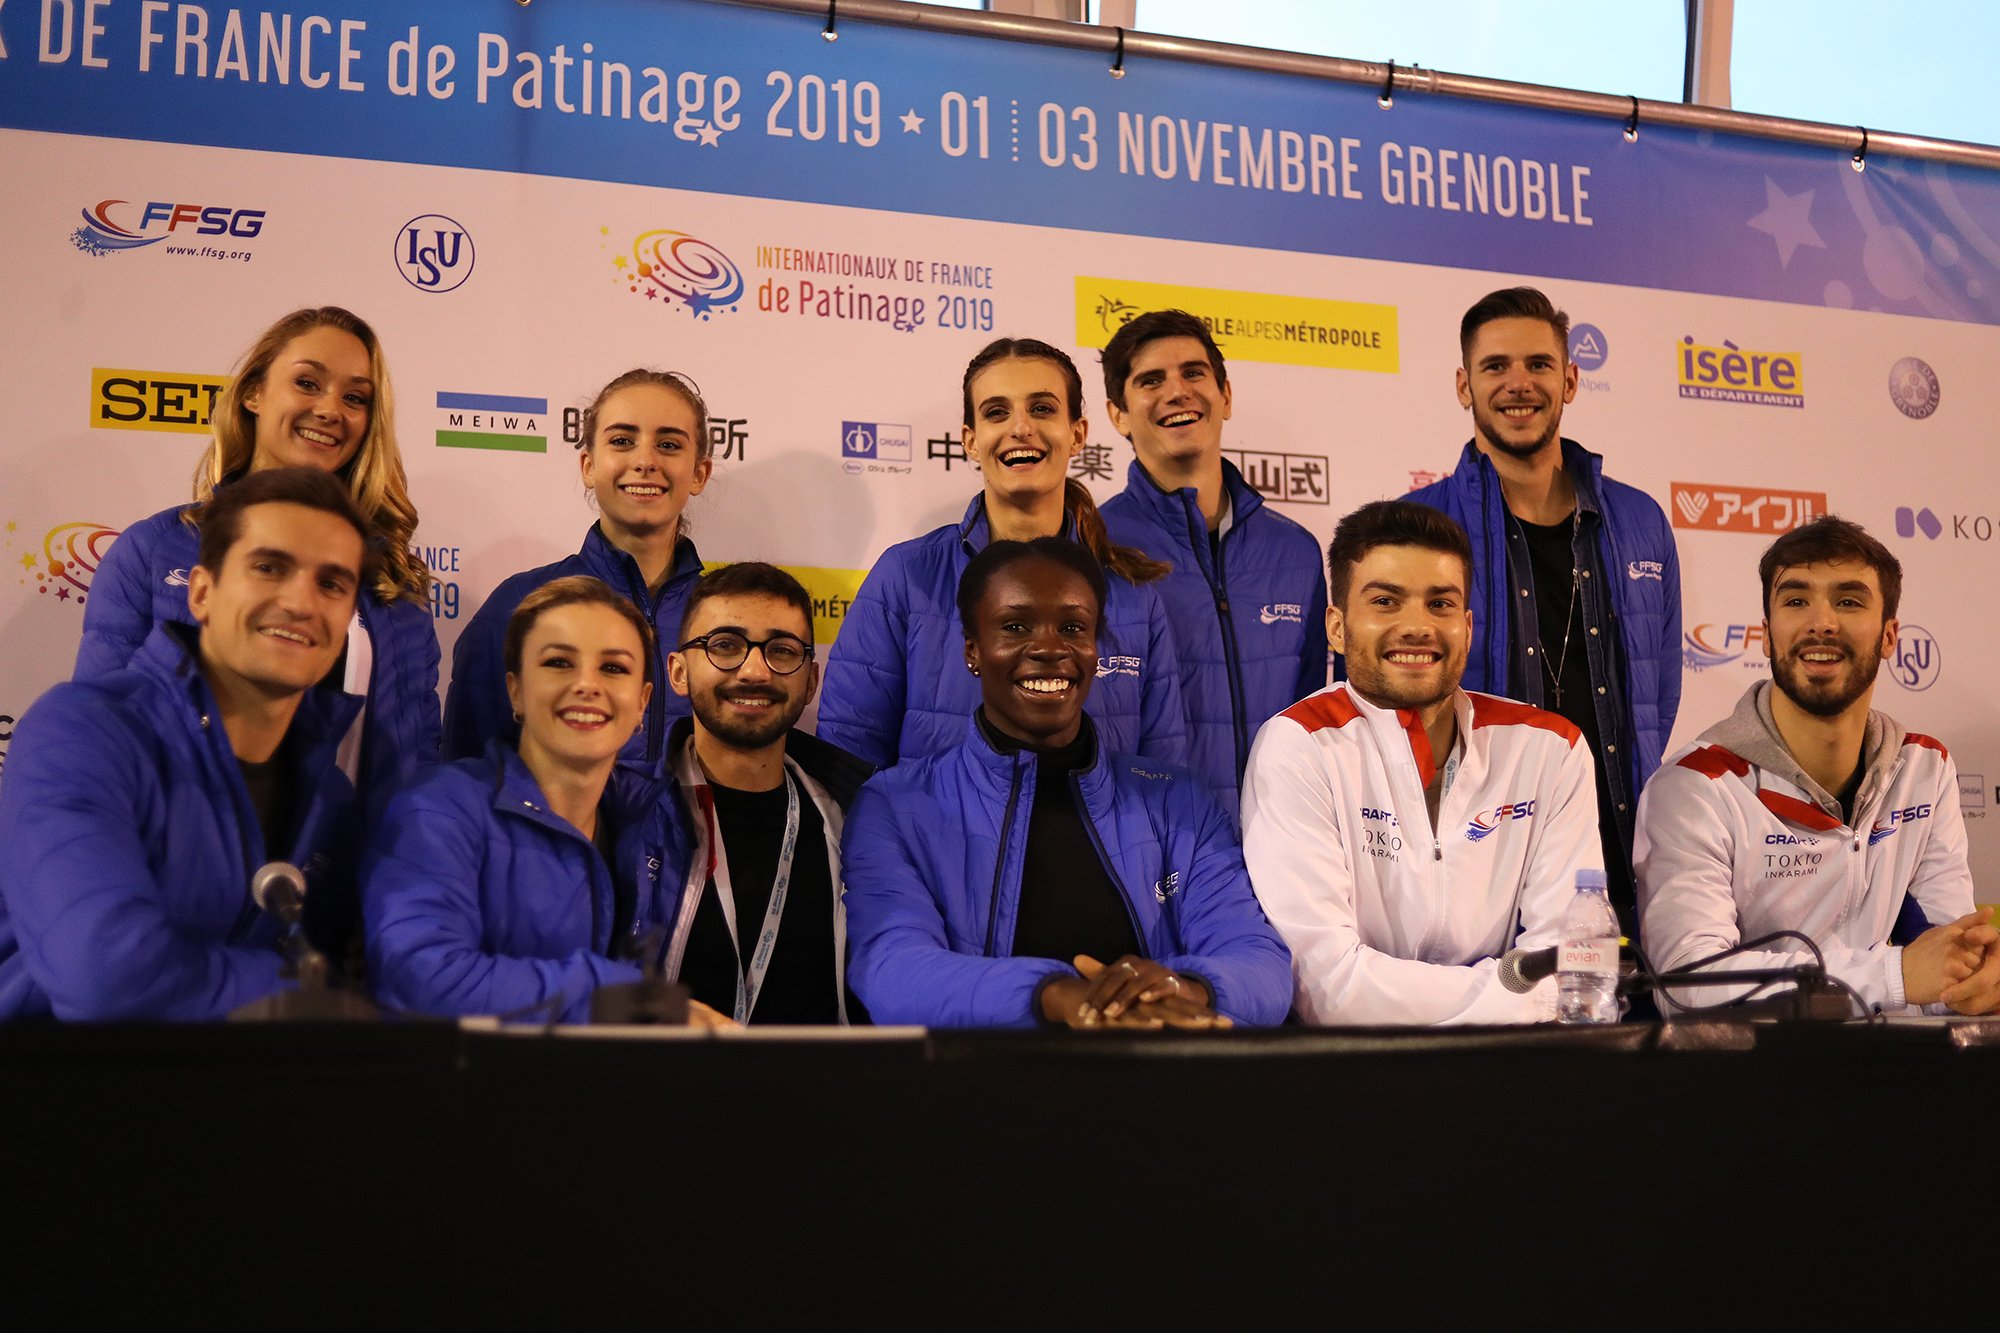 GP - 3 этап. Internationaux de France Grenoble / FRA November 1-3, 2019 - Страница 3 EIOc7loXsAI44XP?format=jpg&name=large